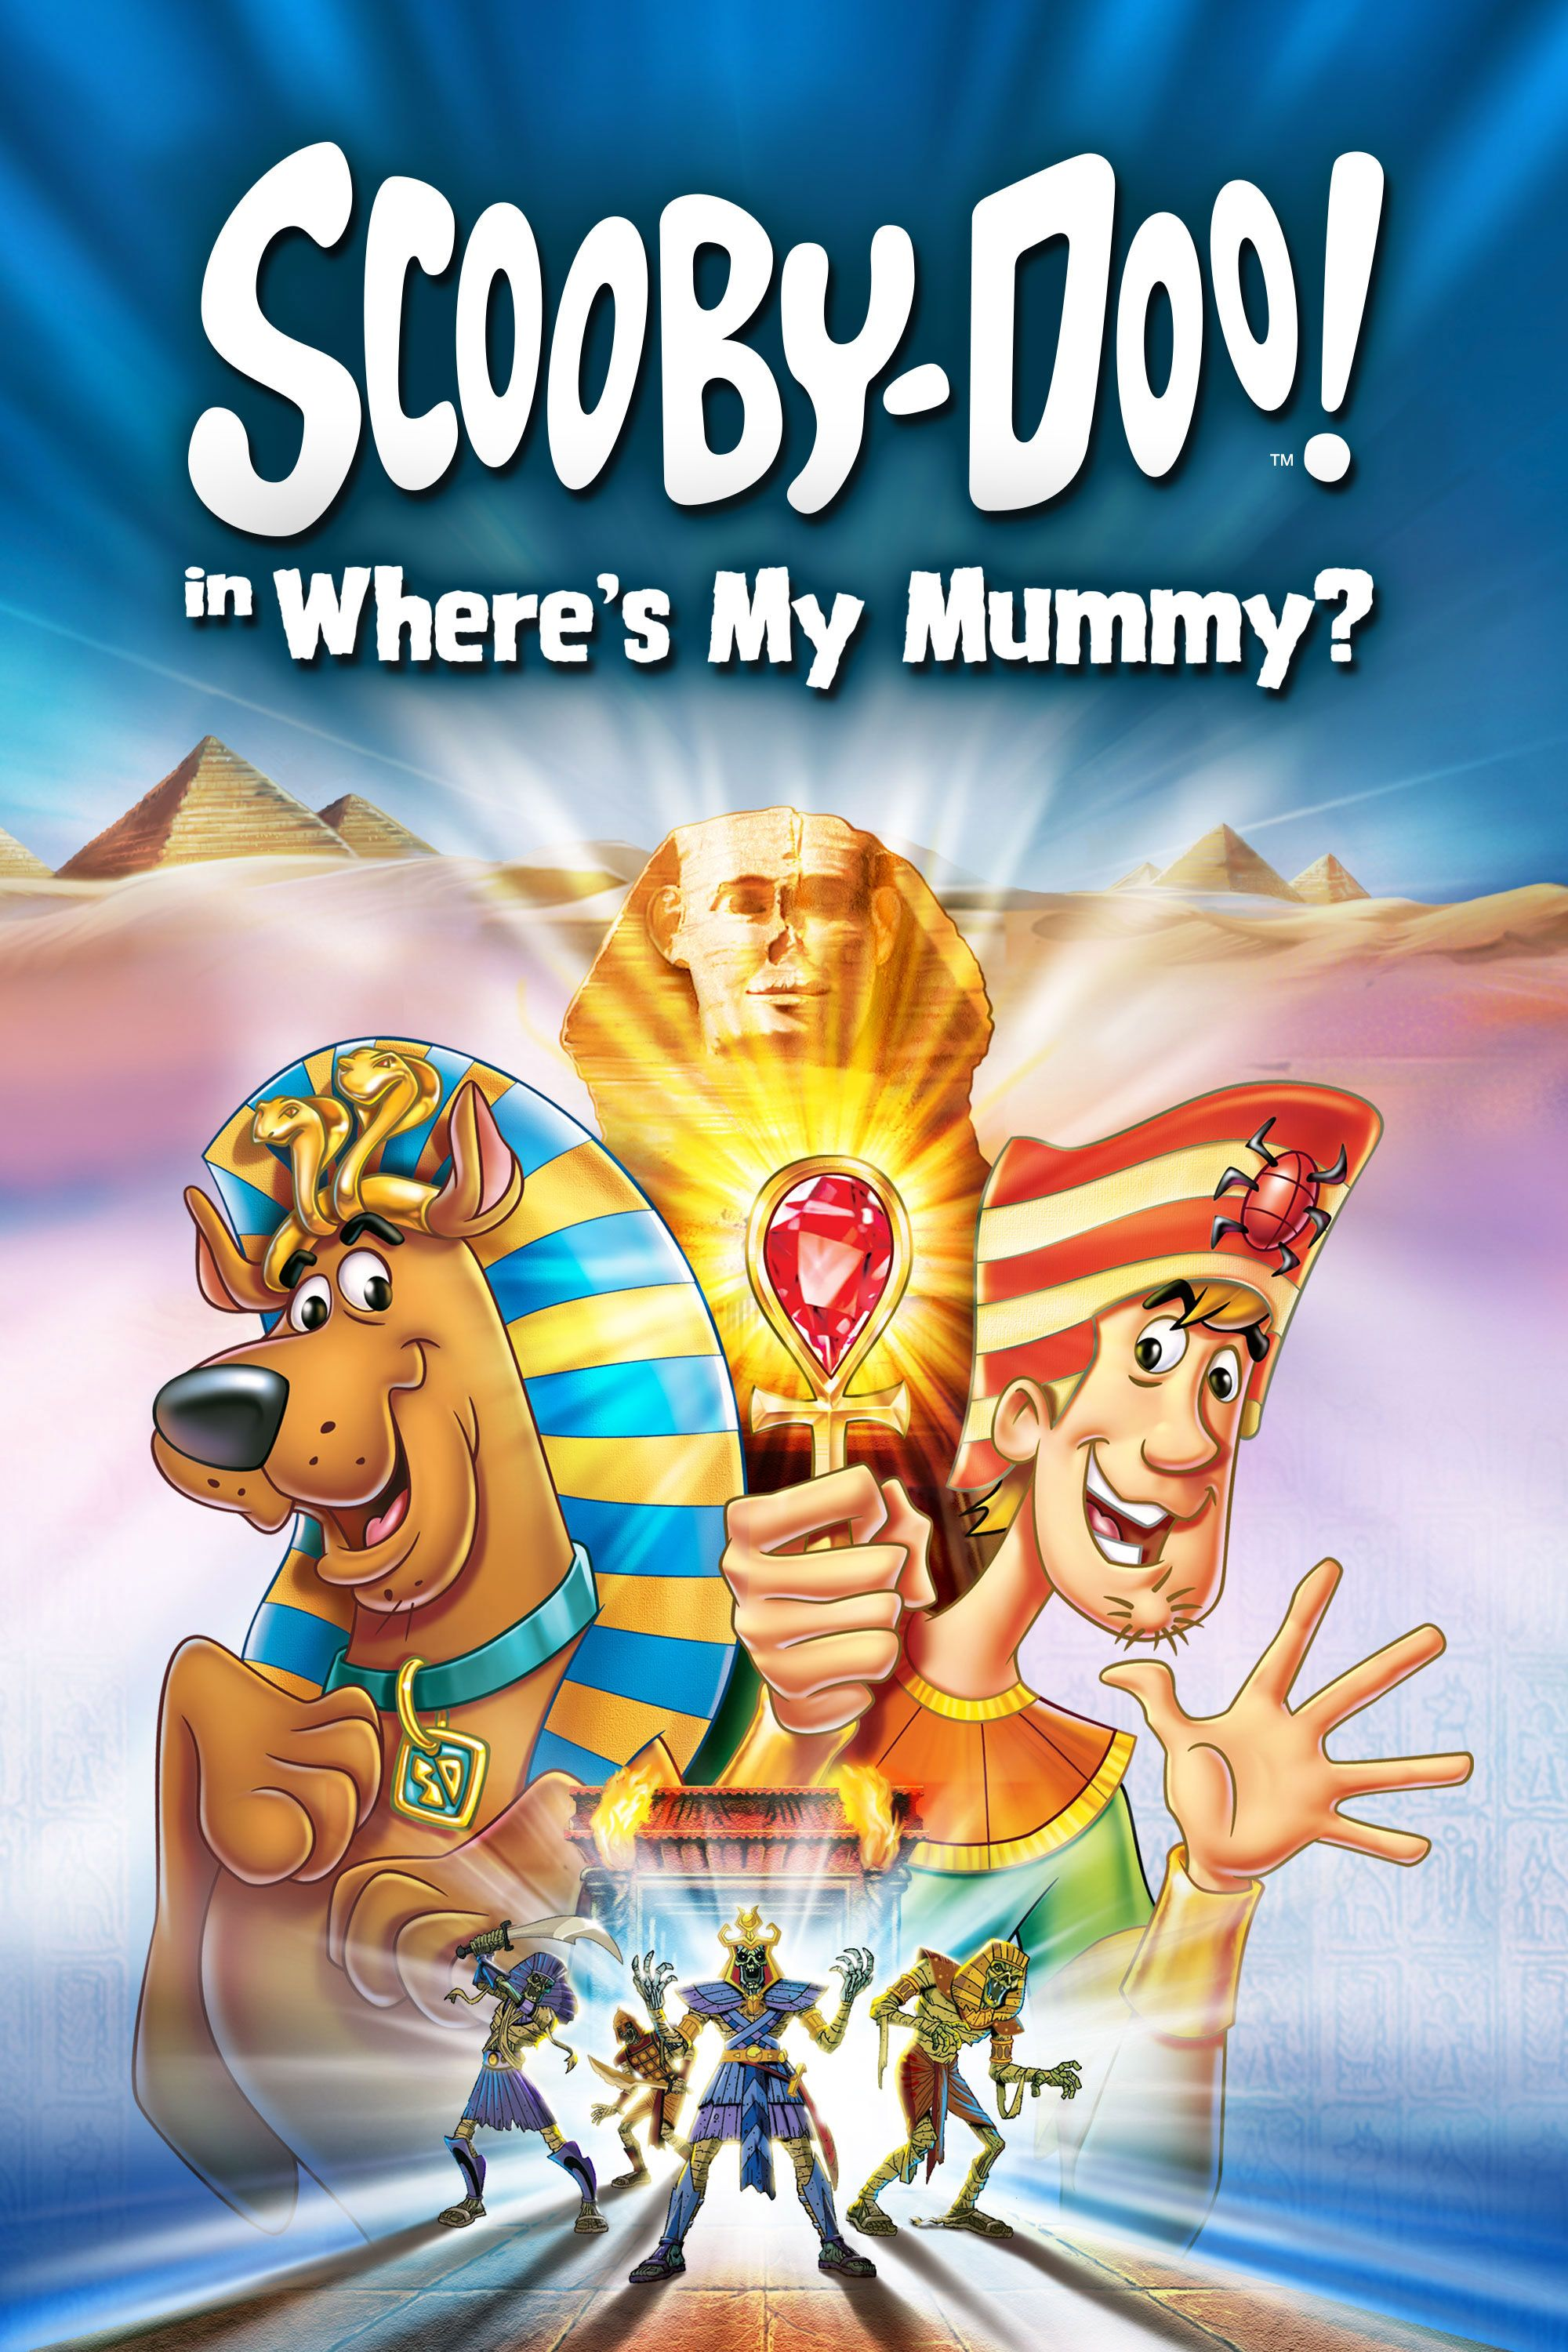 Scooby Doo In Where S My Mummy Full Movie Movies Anywhere Home how it works downloads help. scooby doo in where s my mummy full